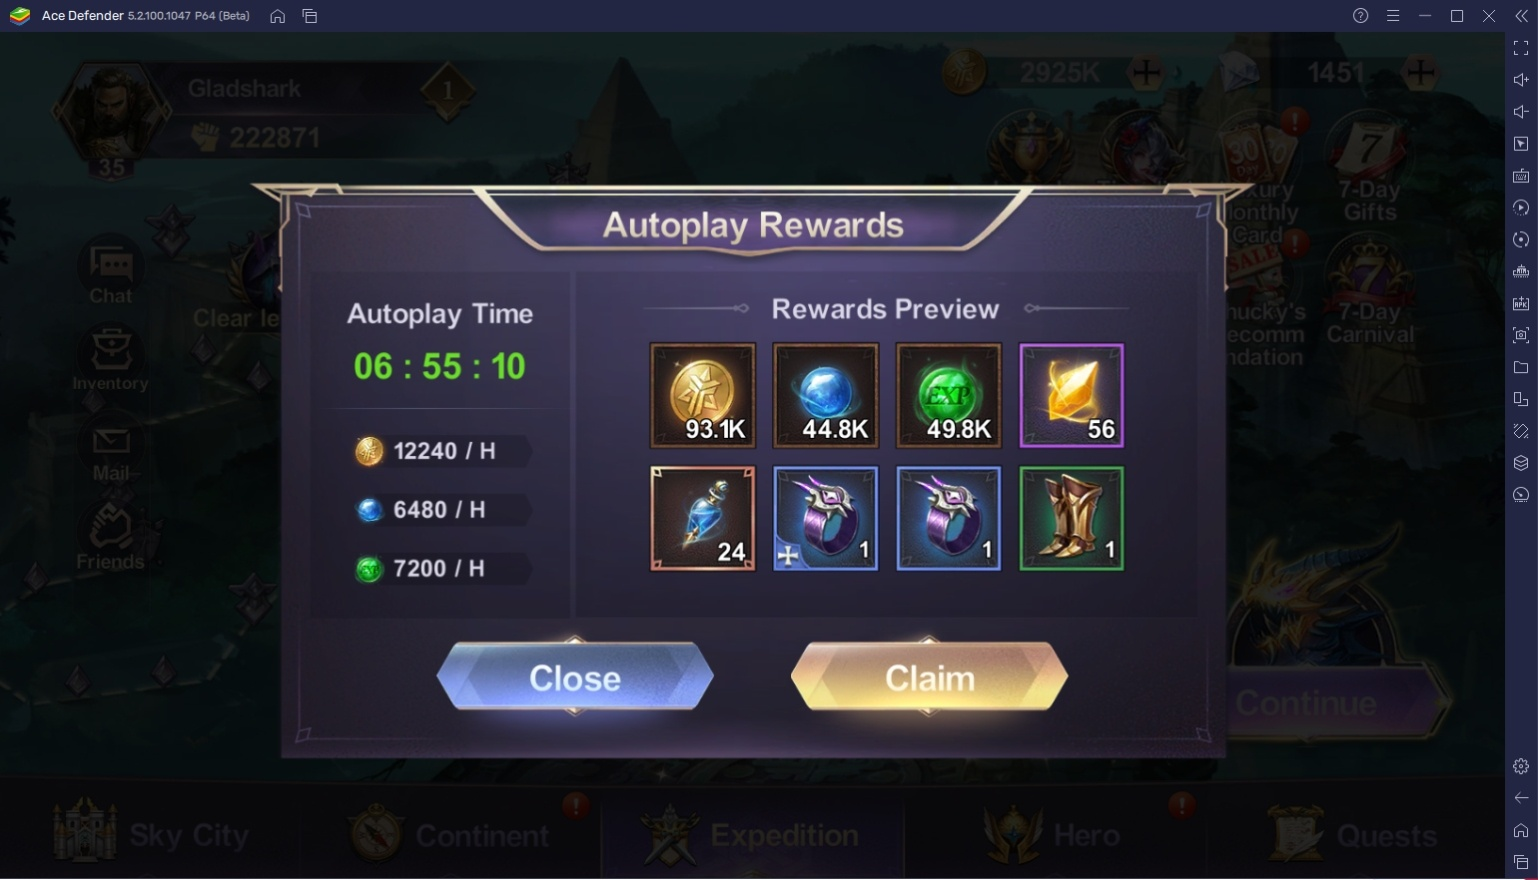 BlueStacks' Beginners Guide to Playing Ace Defender